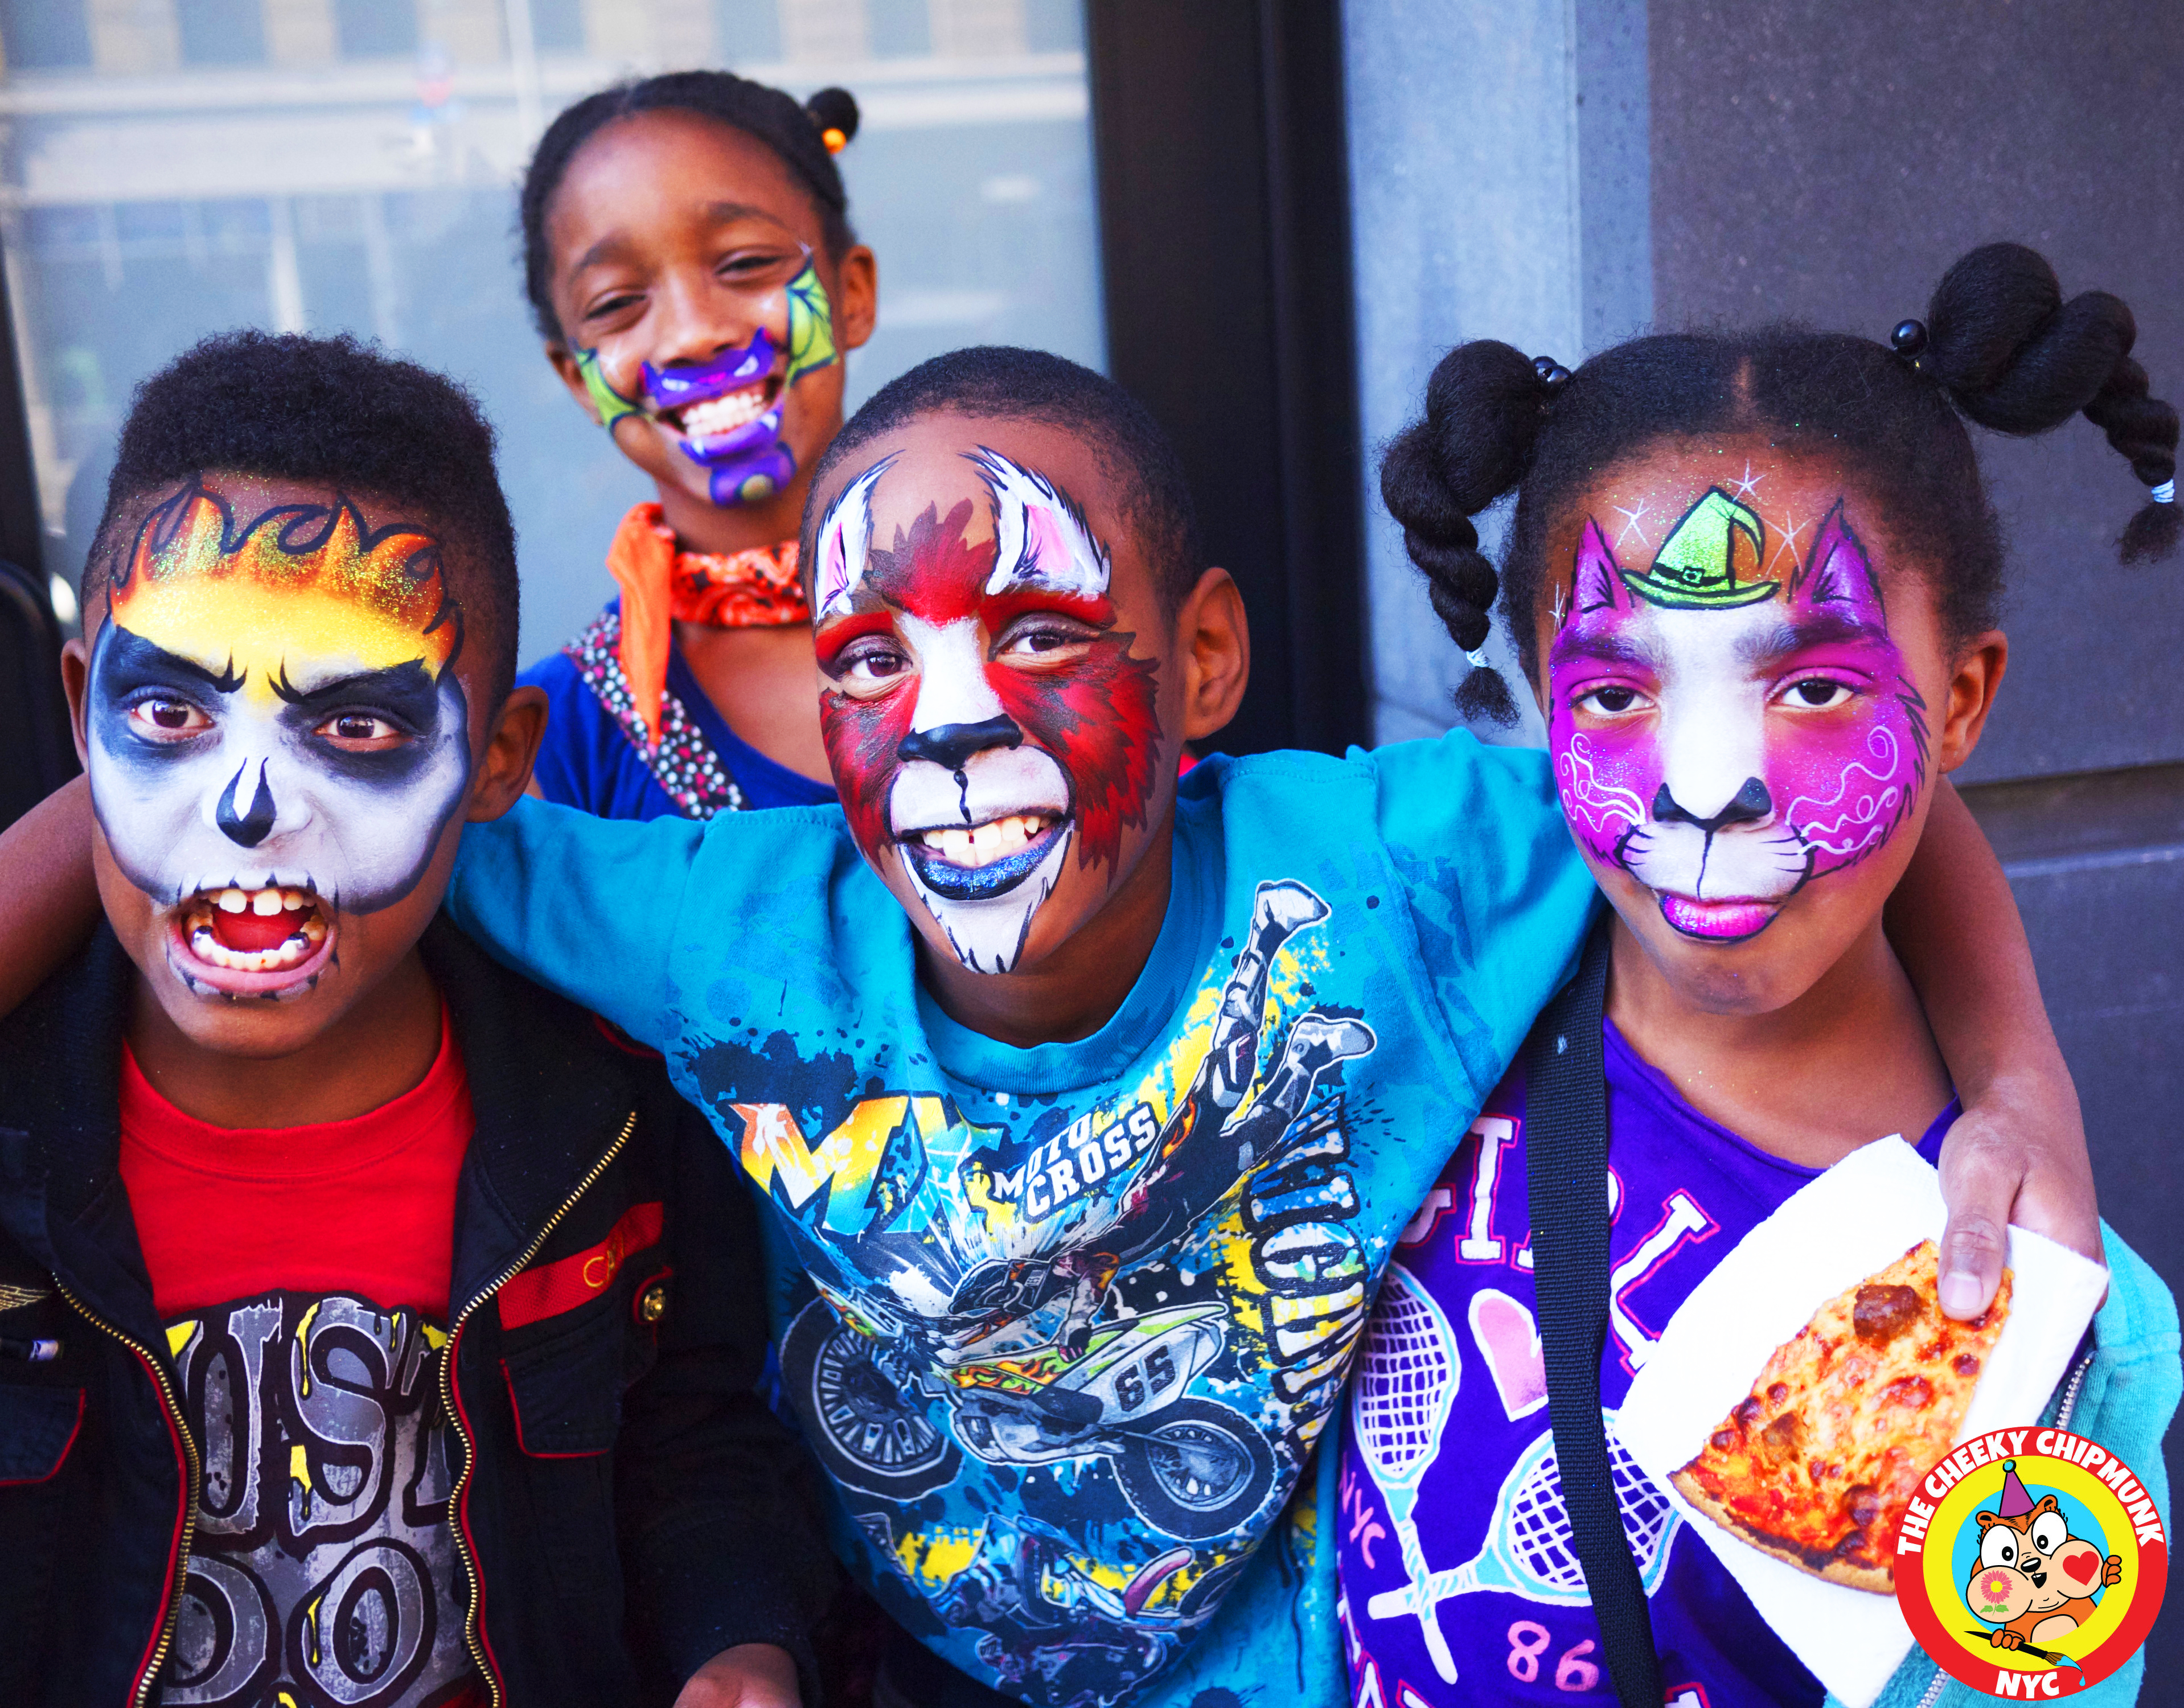 10 things a professional facepainter wants you to know